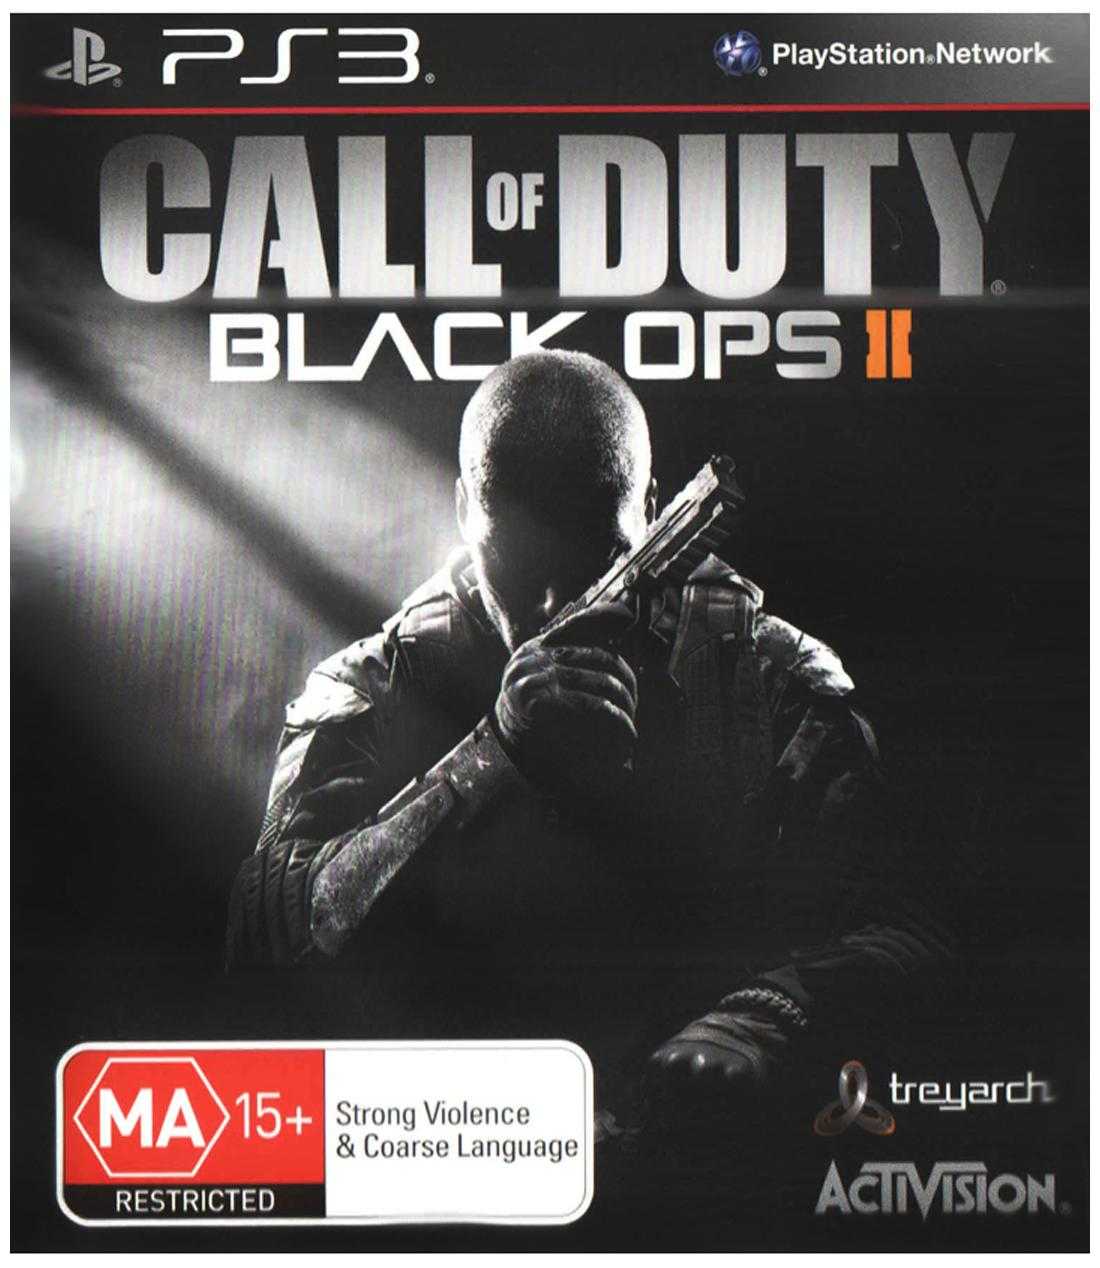 Call Of Duty: Black Ops II COD (For PlayStation 3)